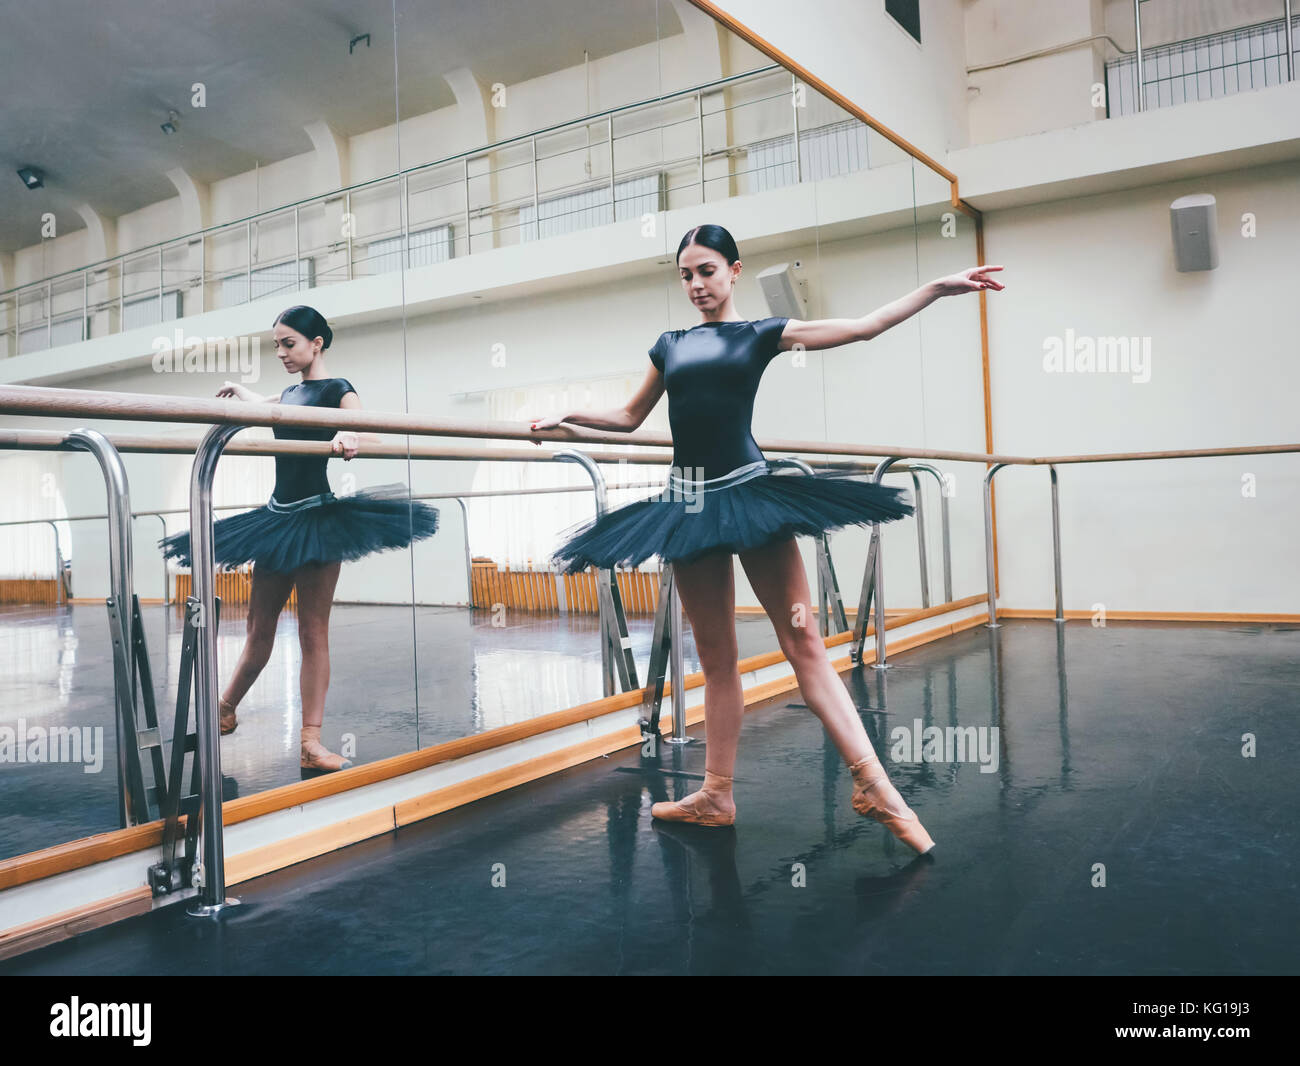 Ballerina in black tutu and pointe stretches on barre in ballet gym. Woman standing near bar and mirror, preparing Stock Photo